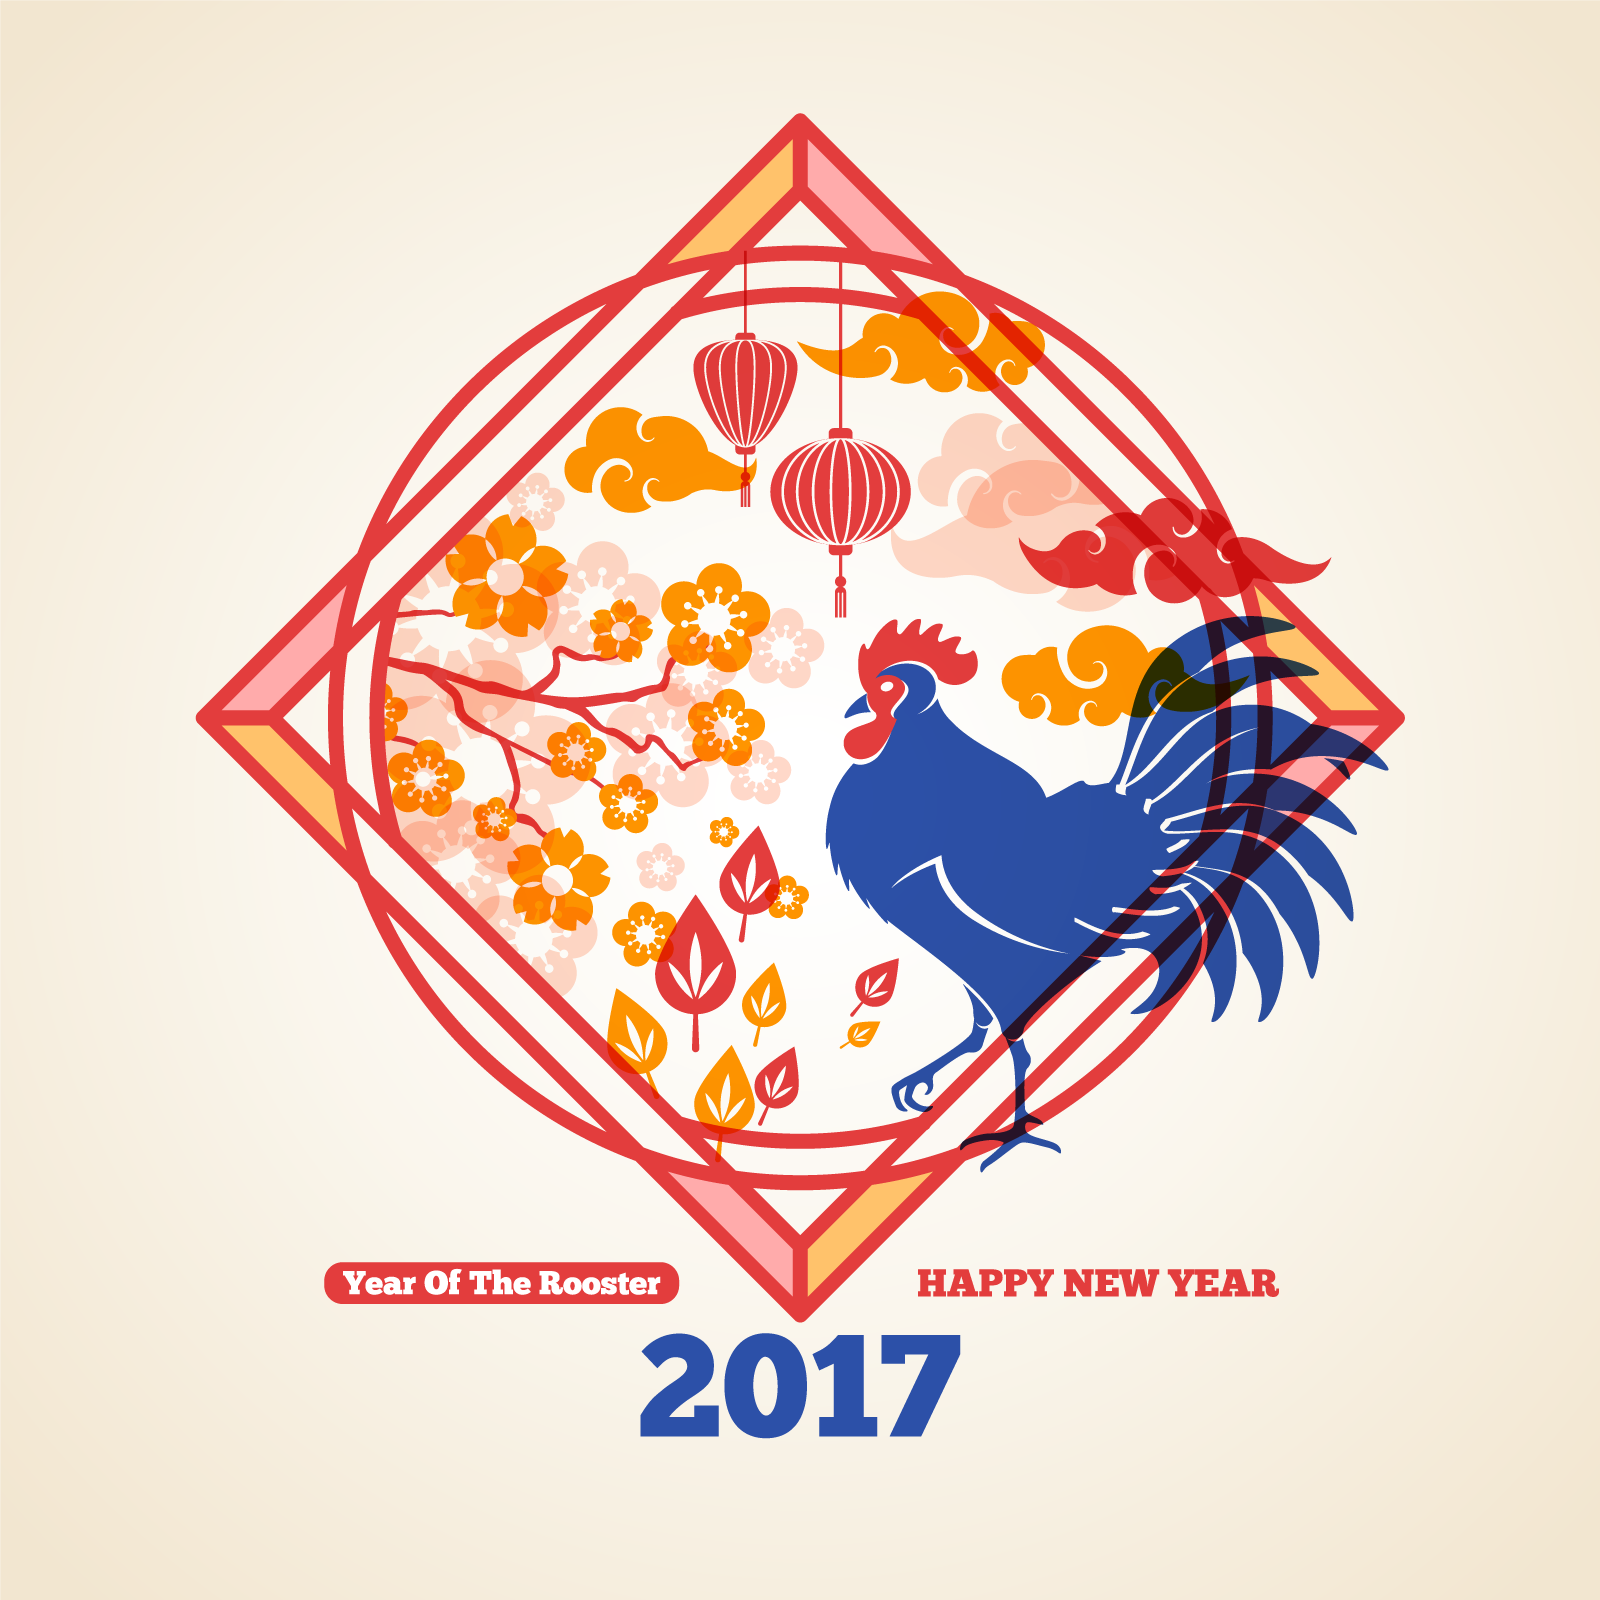 chinesefontdesign.com 2017 04 23 19 49 09 Chinese chicken year Blessing of pattern China Illustrations Vectors AI ESP Chicken Vectors chicken ai